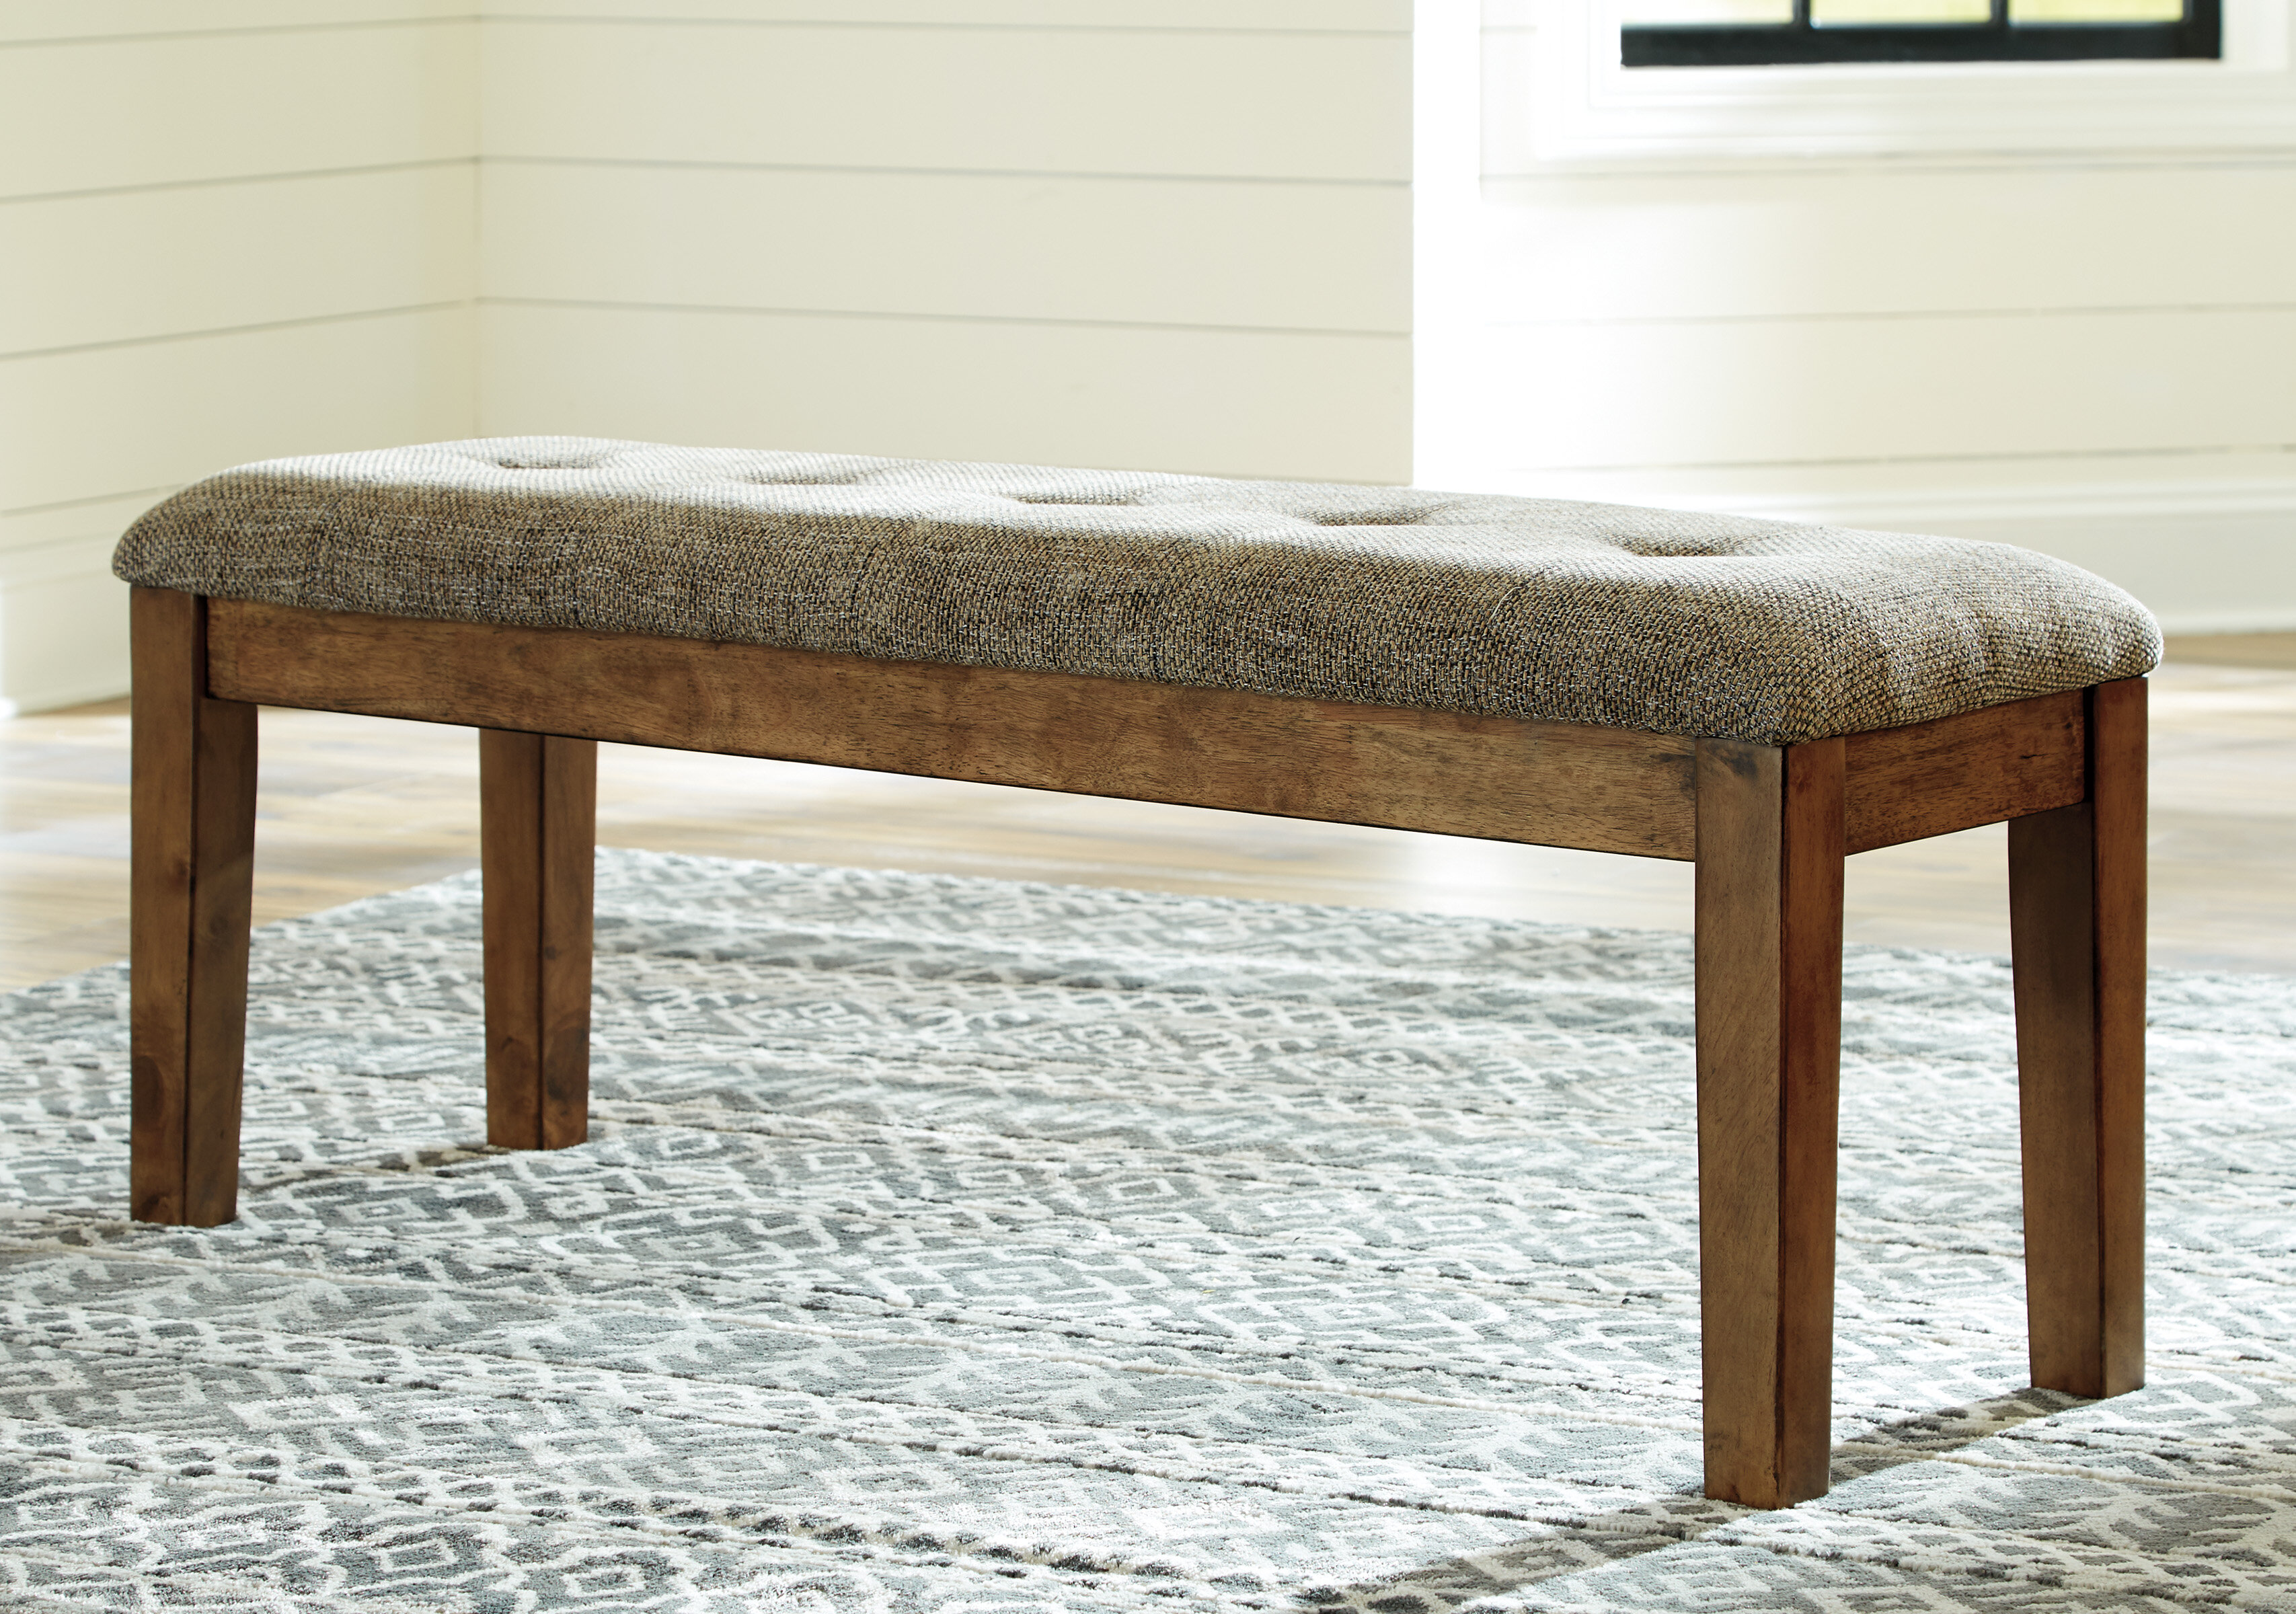 Millwood Pines Fia Upholstered Bench Reviews Wayfair